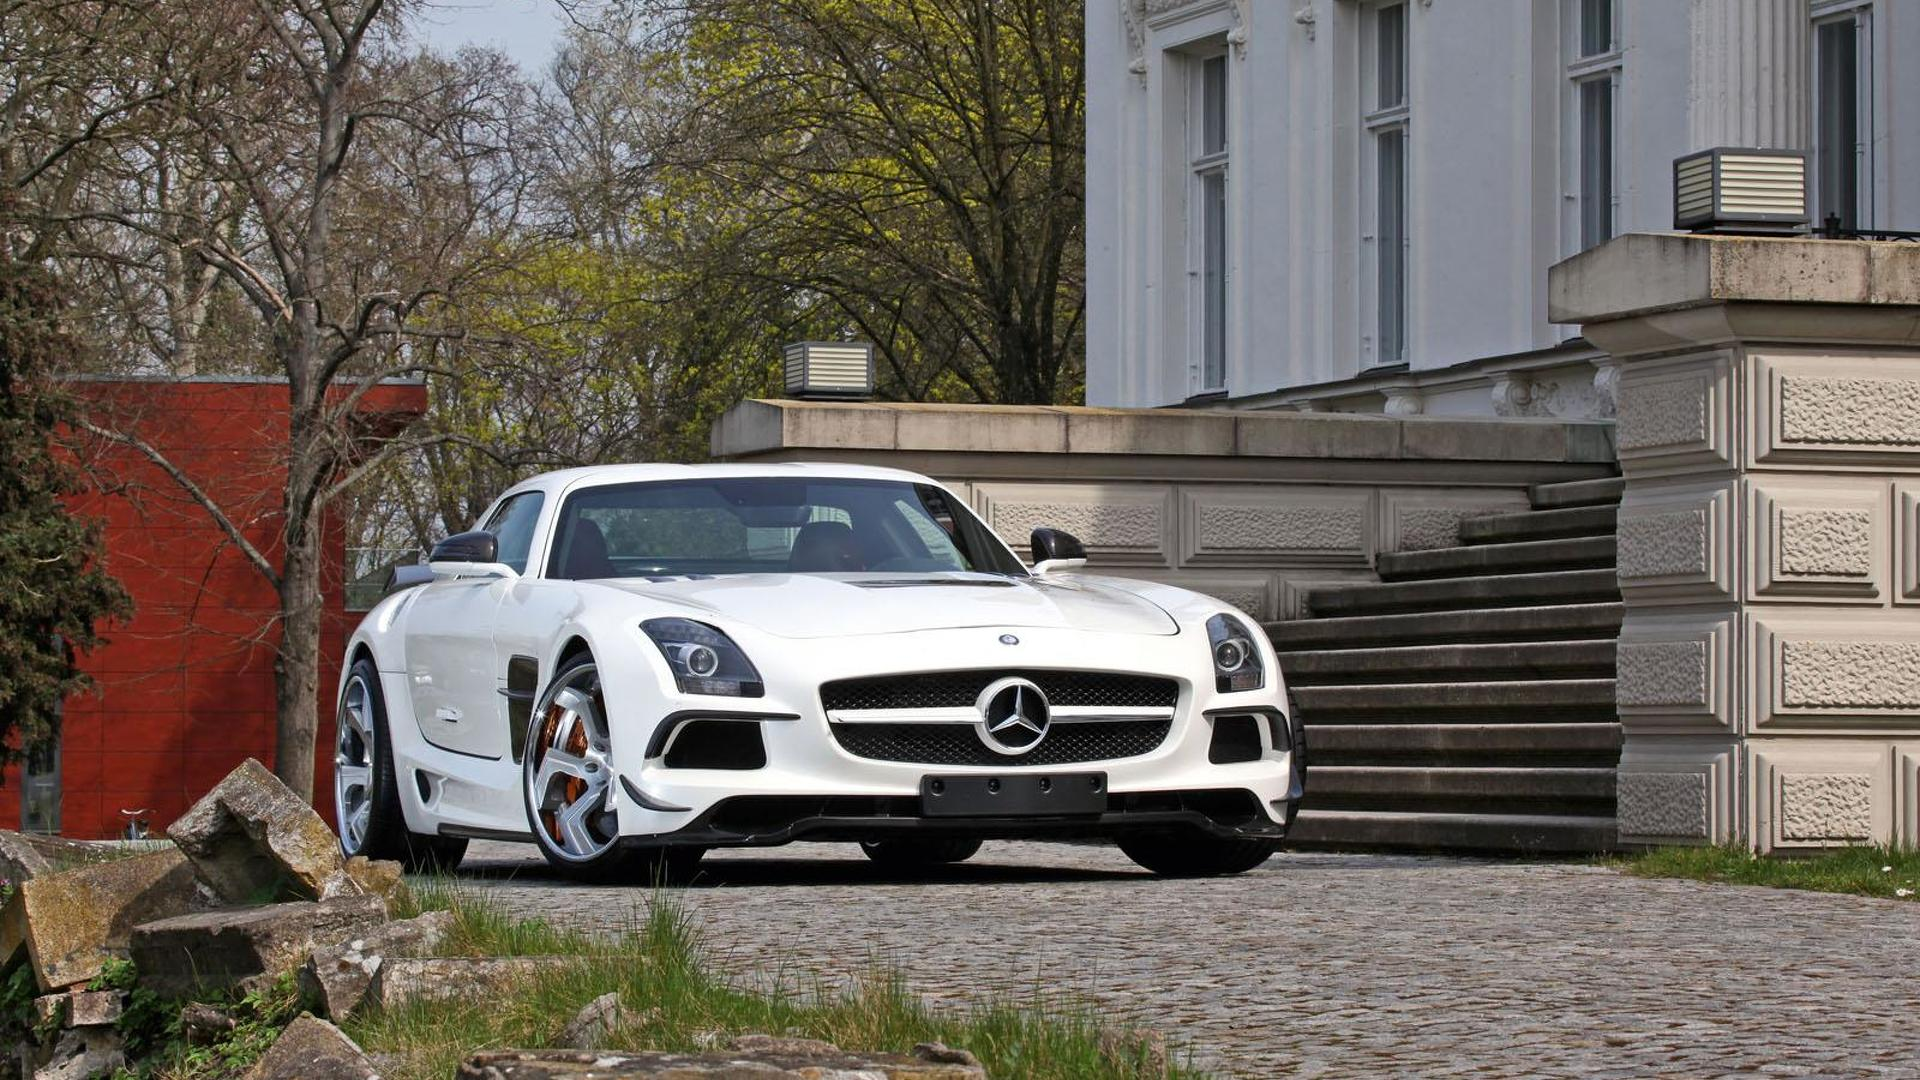 SGA unveils their widebody kit for the Mercedes SLS AMG